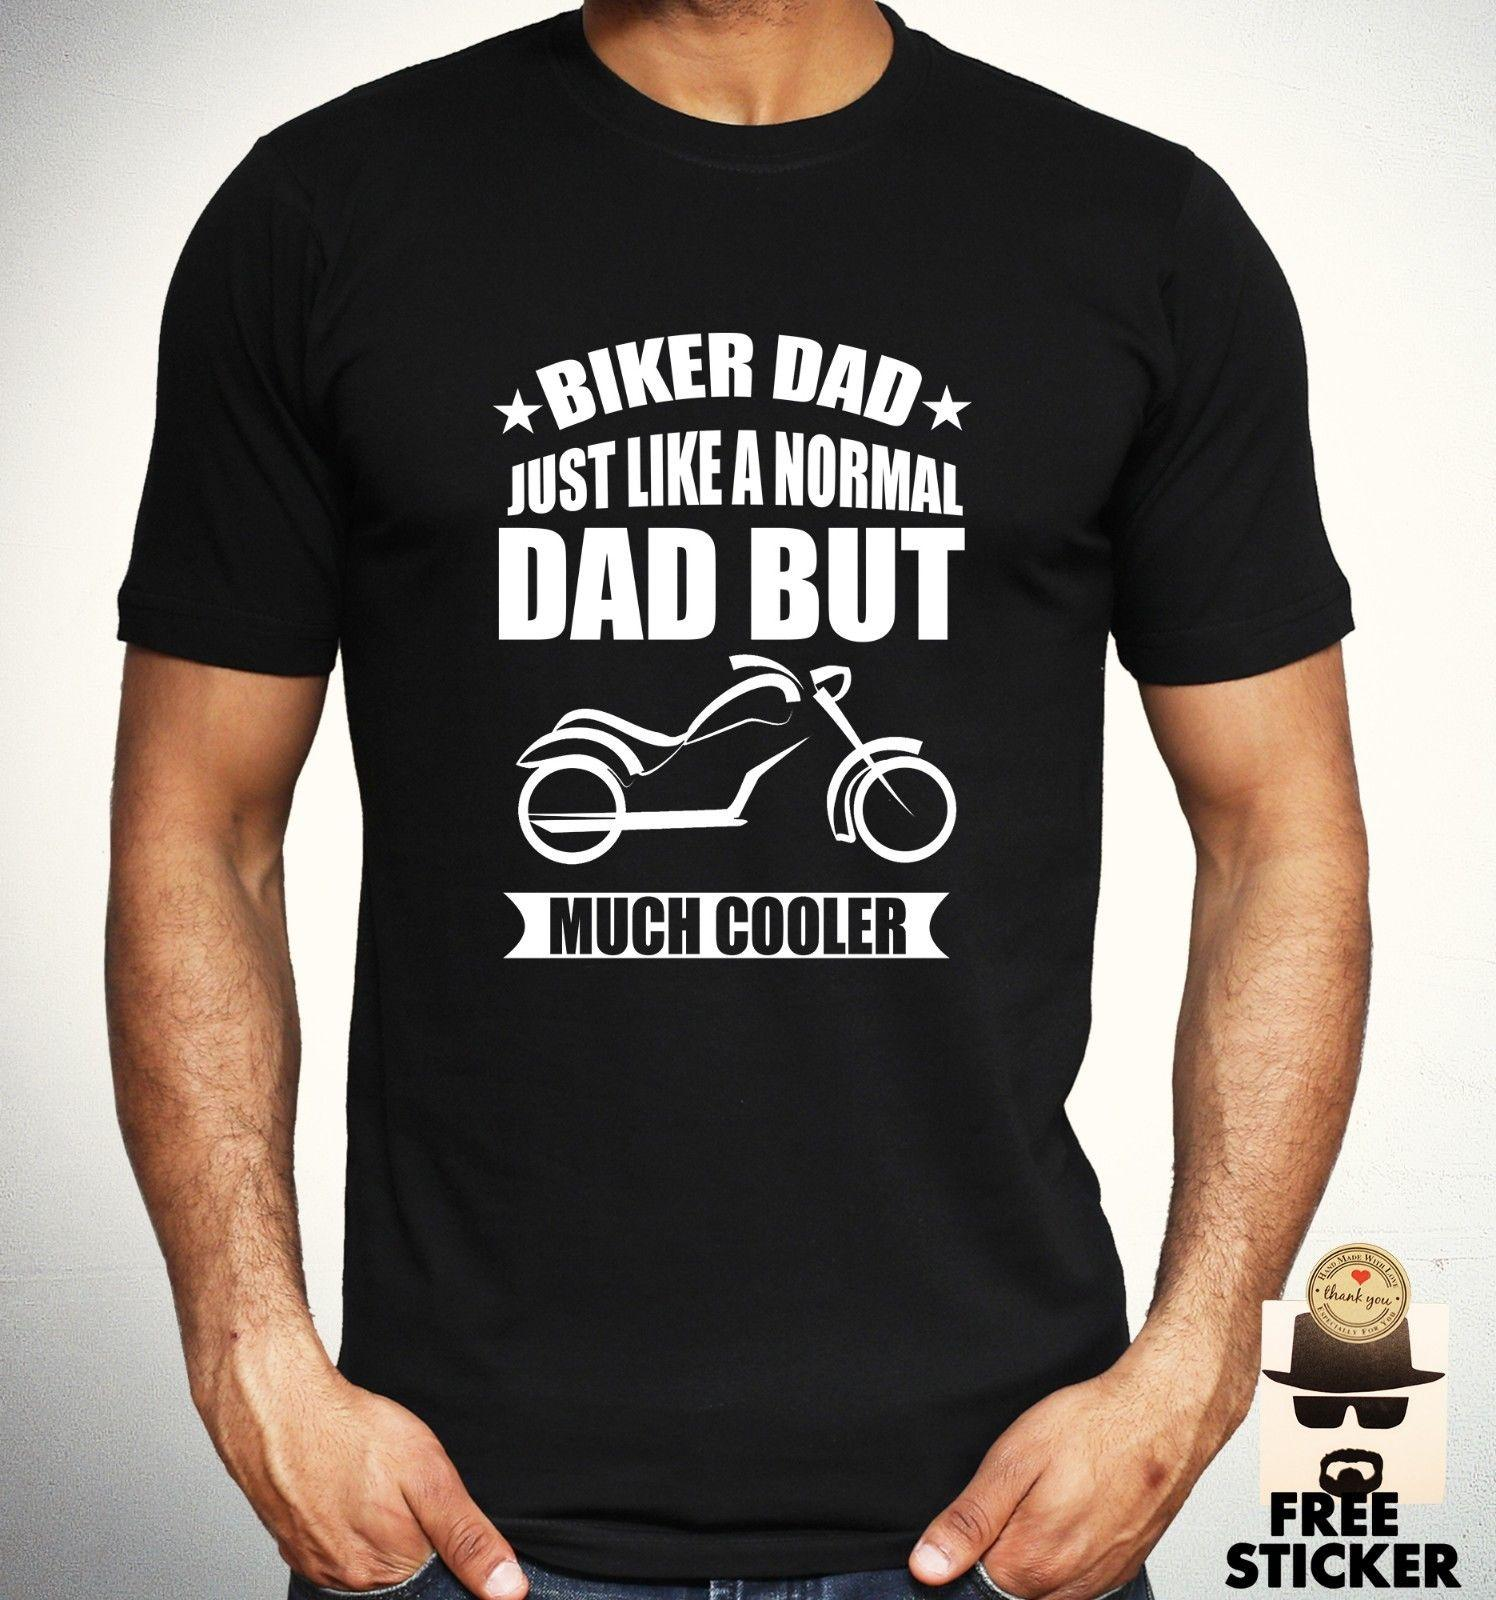 Biker Dad T Shirt Motorcycle Cool Father Birthday Present Gift Top Mens S M L XL The Who Shirts Designs From Viptshirt28 1572